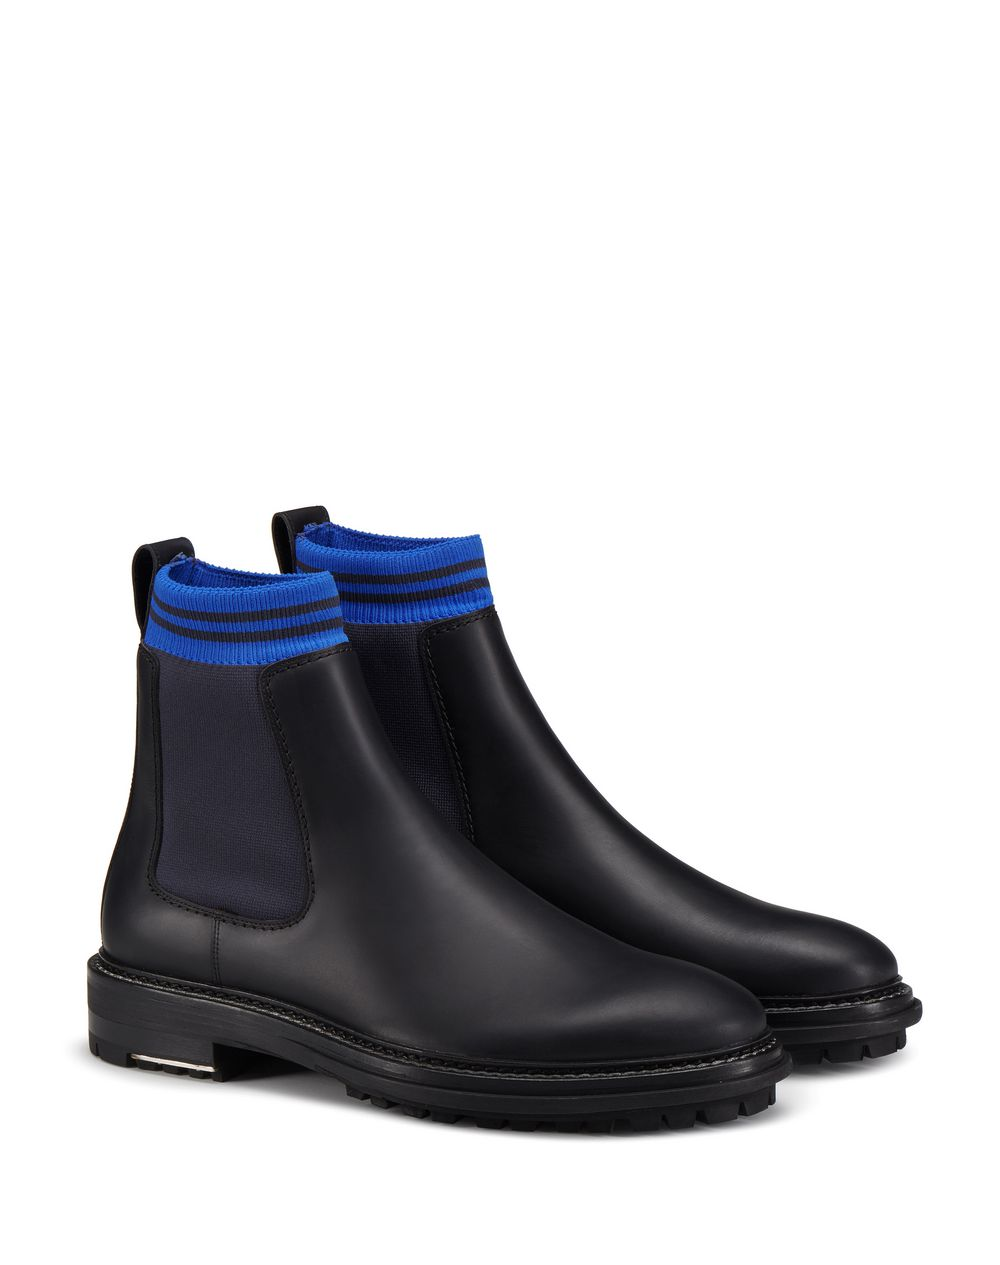 BLACK CHELSEA BOOT WITH SOCK - Lanvin